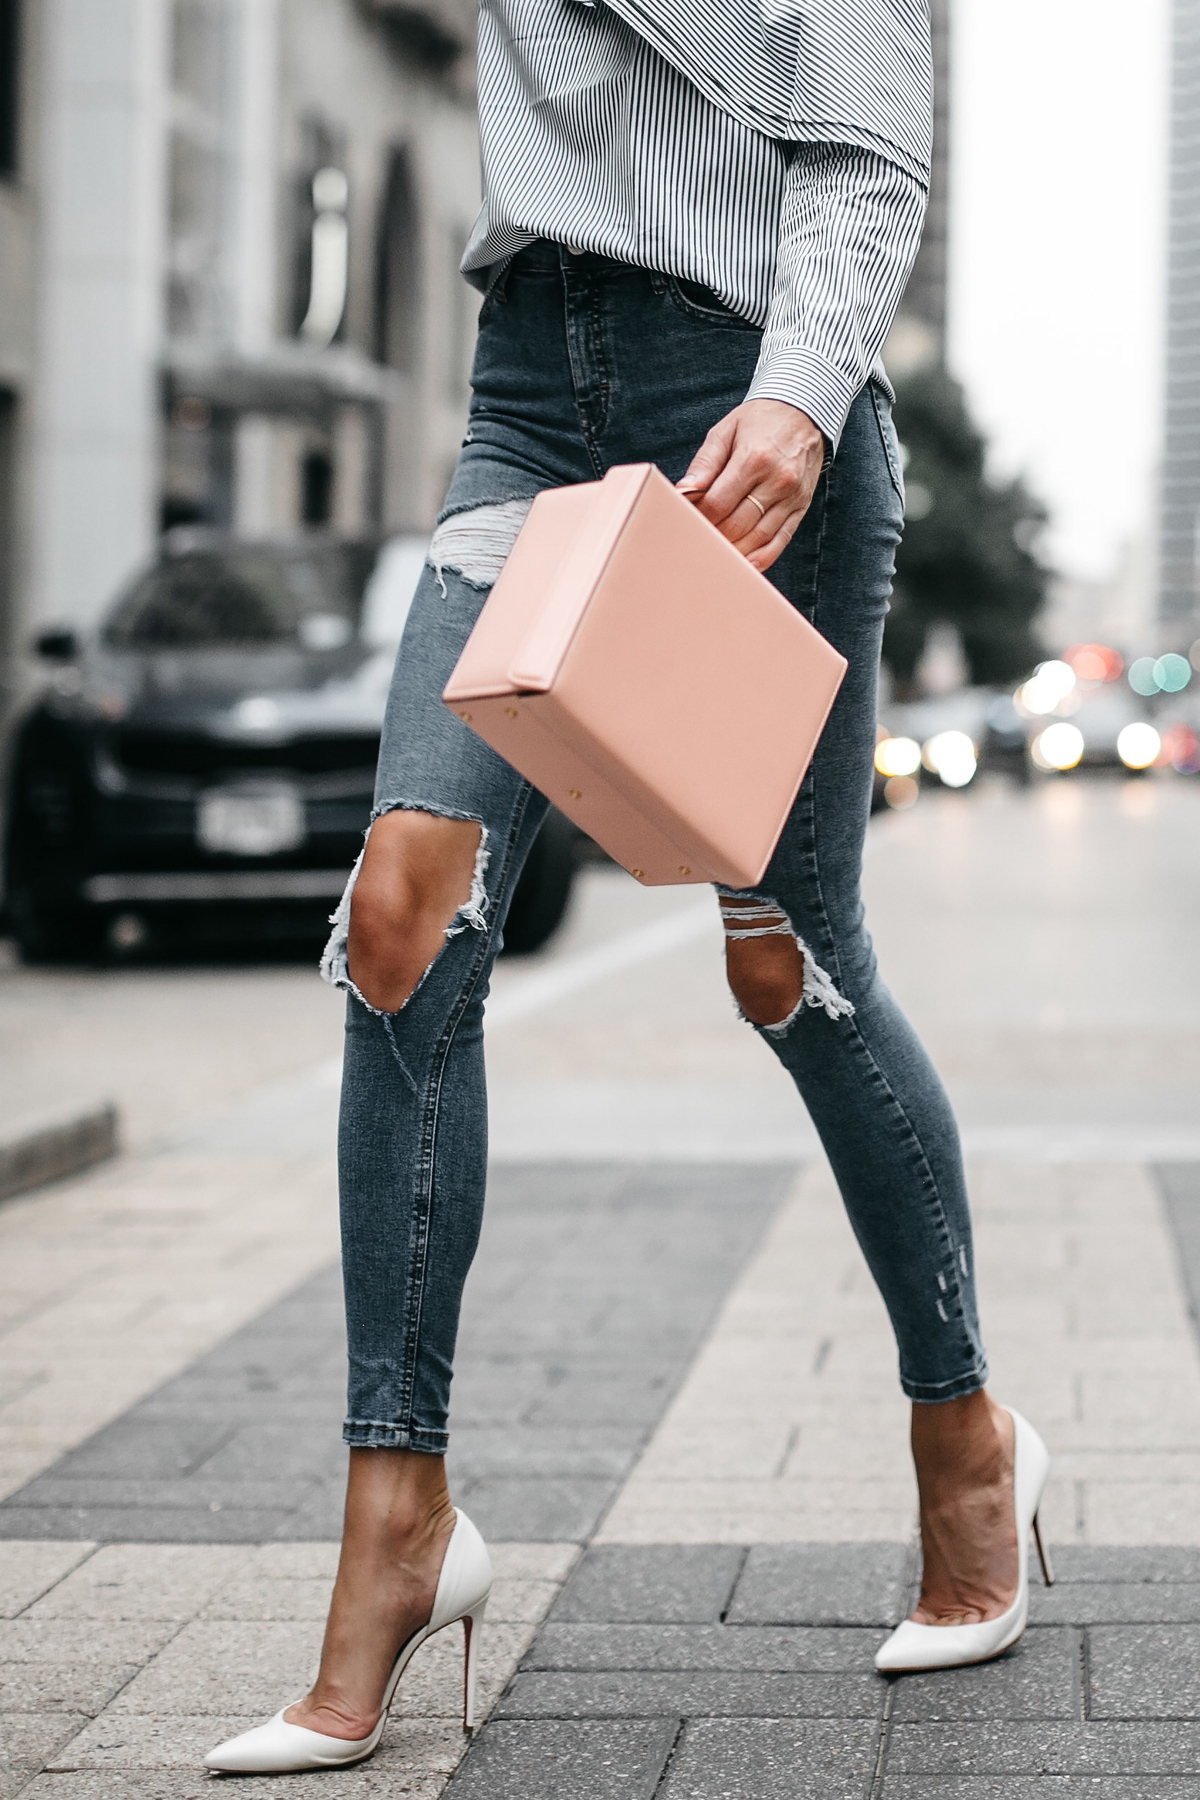 Mark Cross Saffiano Pink Handbag Topshop Denim Ripped Skinny Jeans White Pumps Fashion Jackson Dallas Blogger Fashion Blogger Street Style